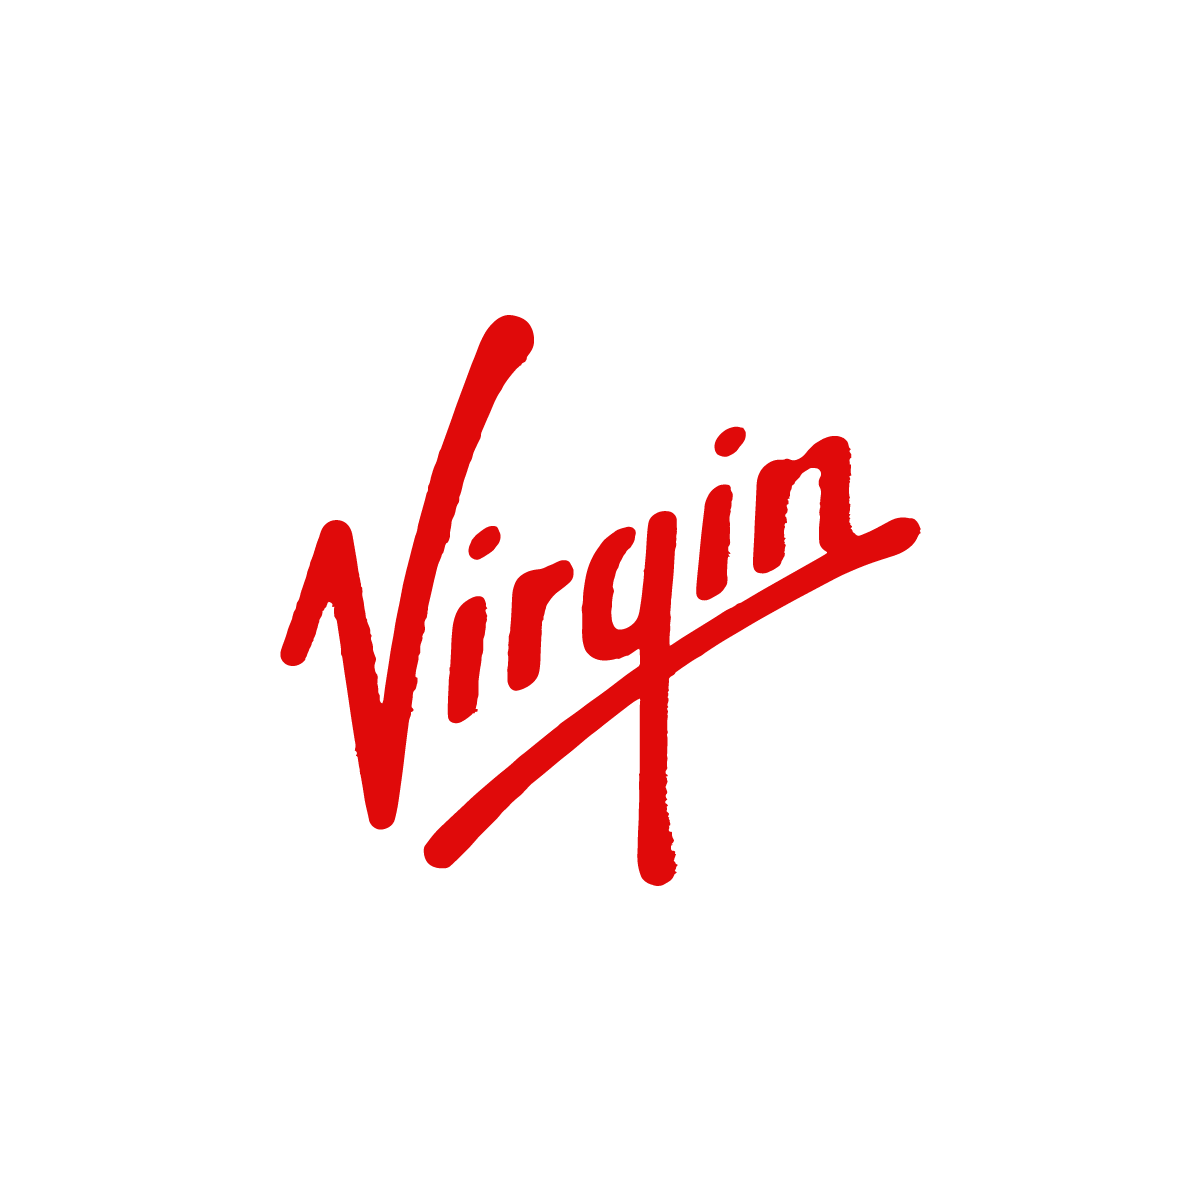 The Virgin logo in red text on a white background